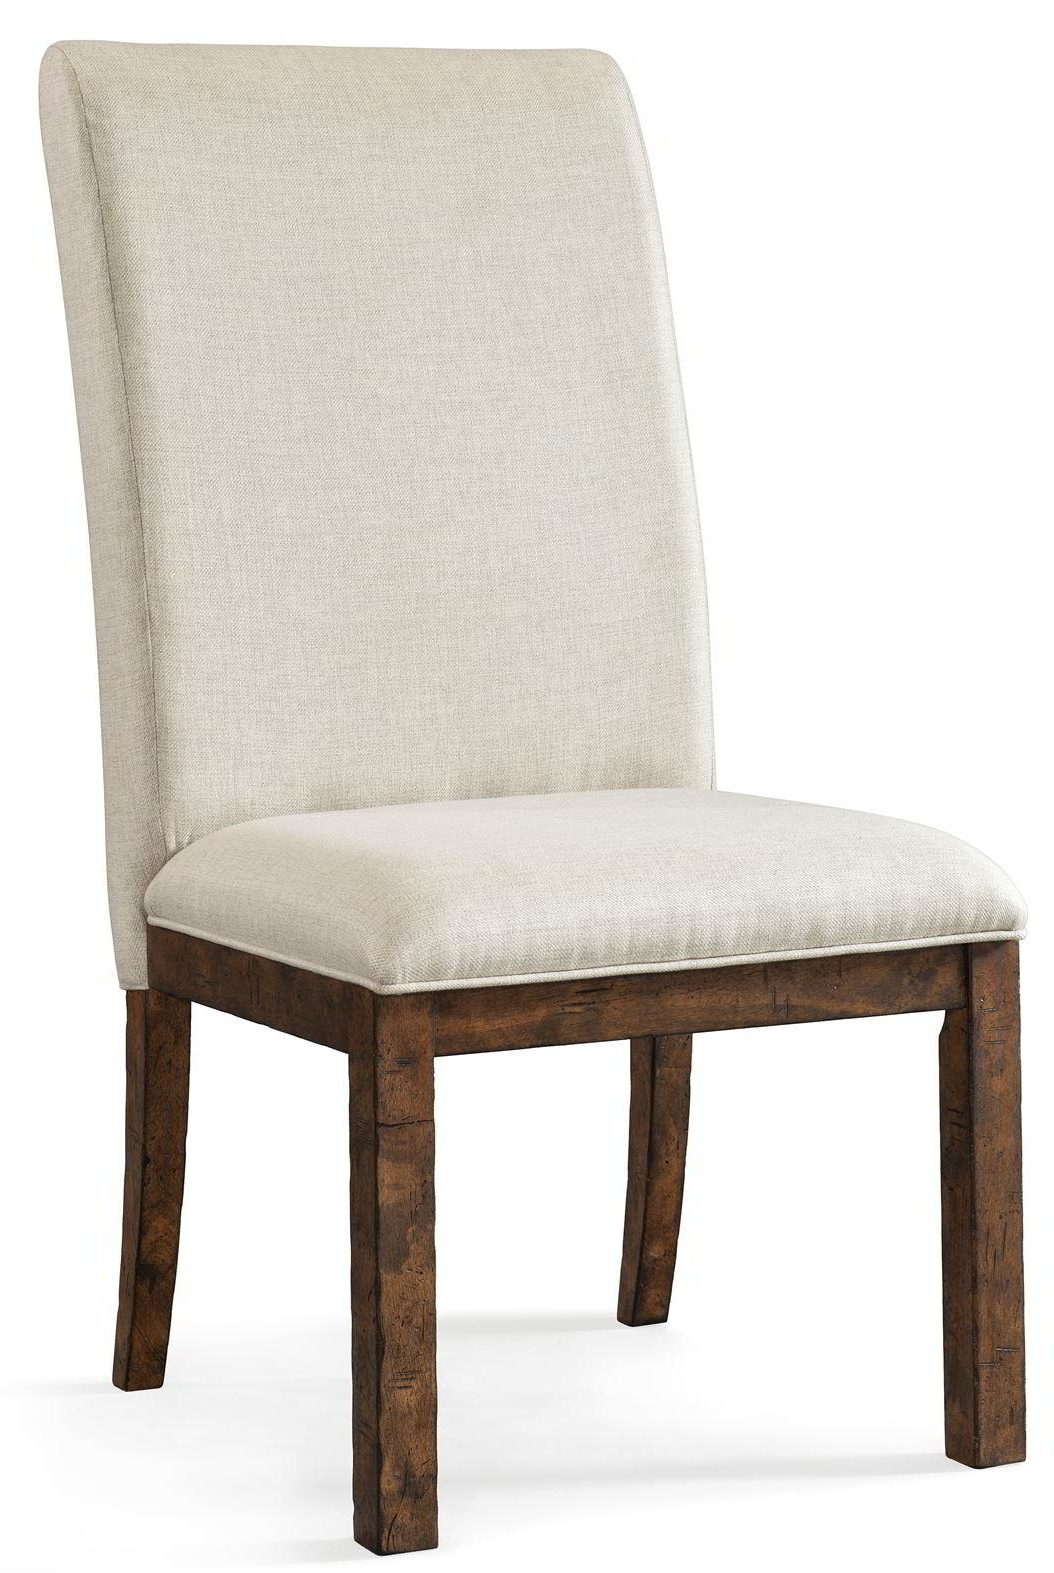 Gwen Upholstered Side Chair, Simple Elegance – Frontroom Furnishings Intended For Gwen Sofa Chairs (Photo 11 of 20)